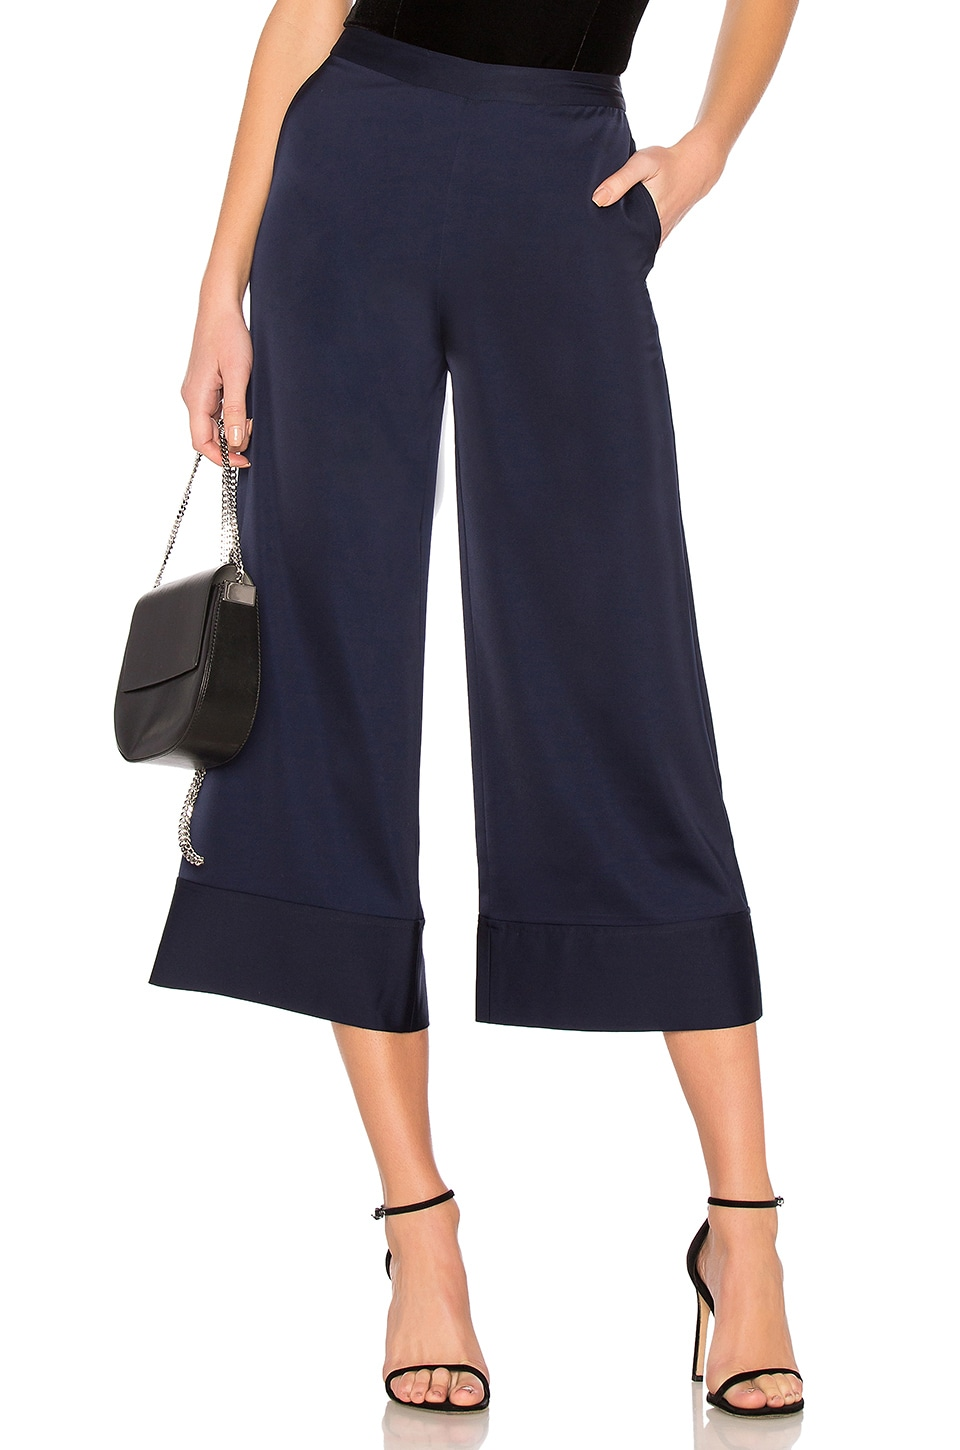 Lovers + Friends Fantasia Cropped Pant in Navy